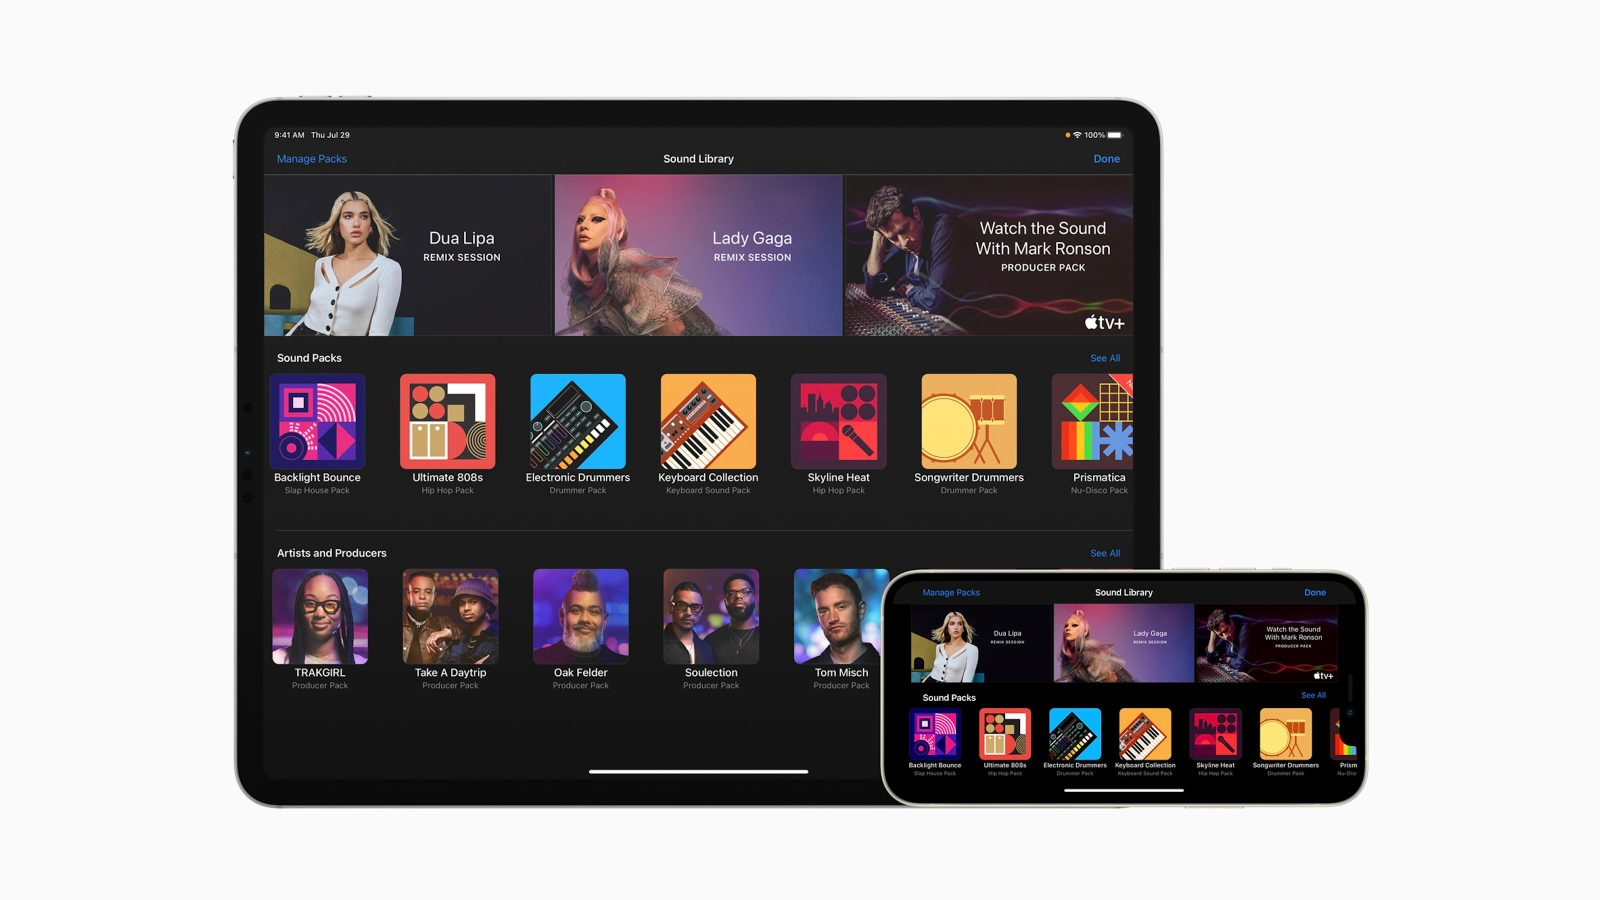 GarageBand for iPhone and iPad updated with new 'Sound Packs' from top artists and producers